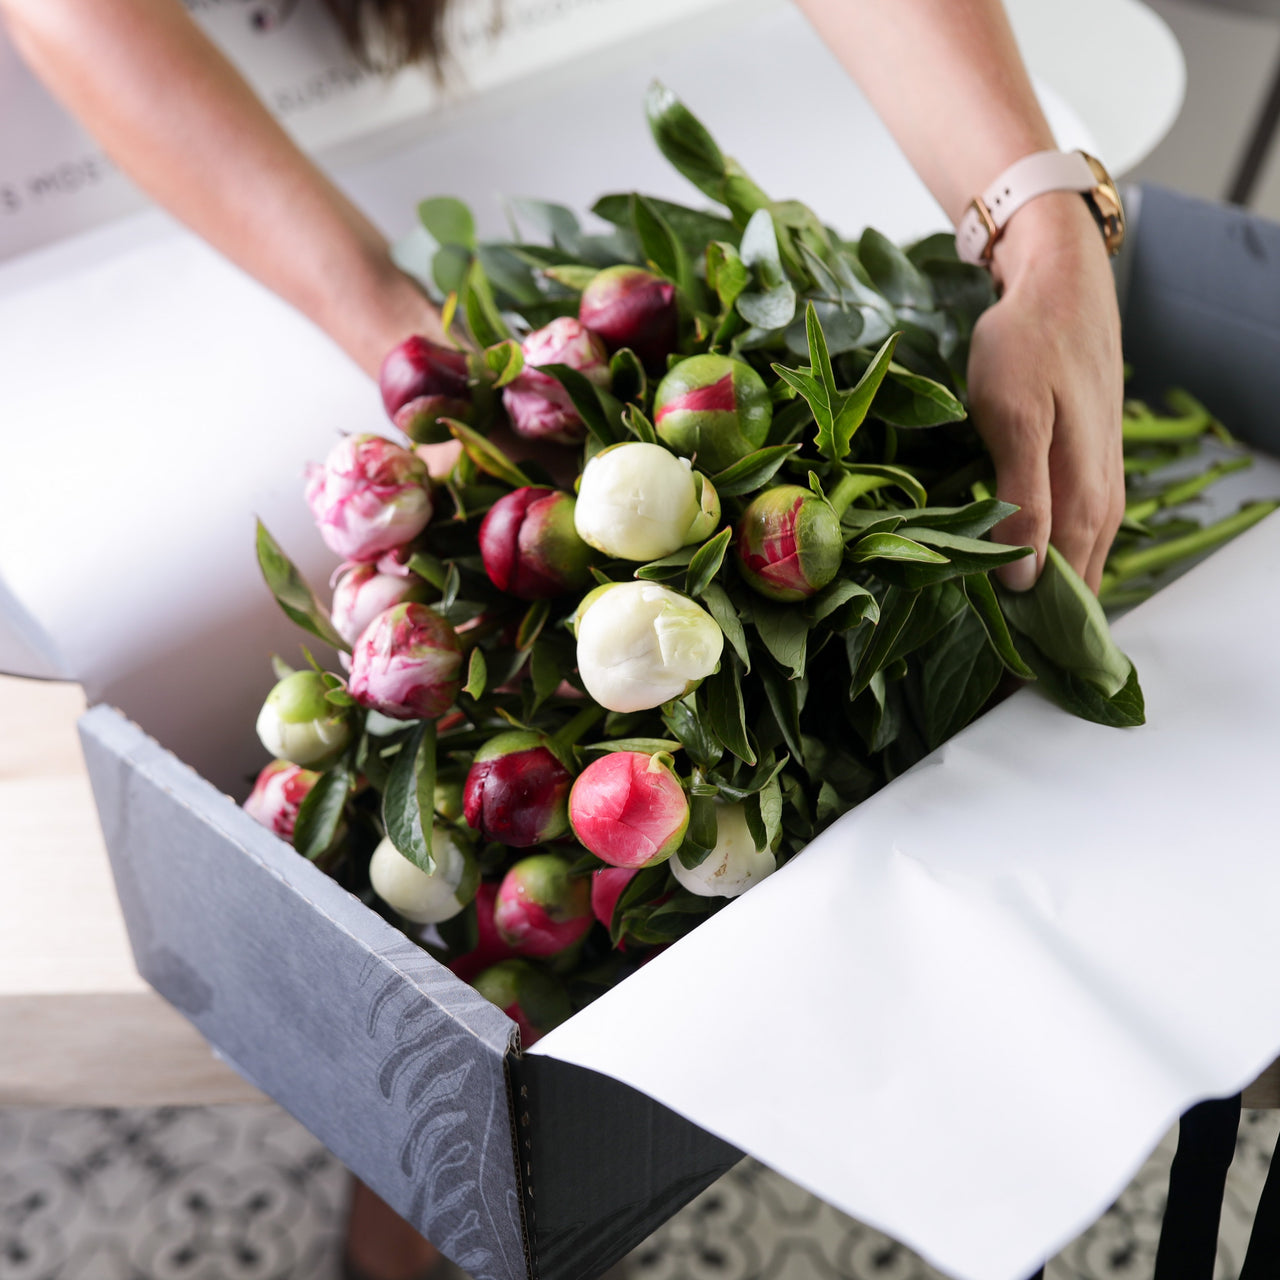 NEW SITE - Flower Subscription Box